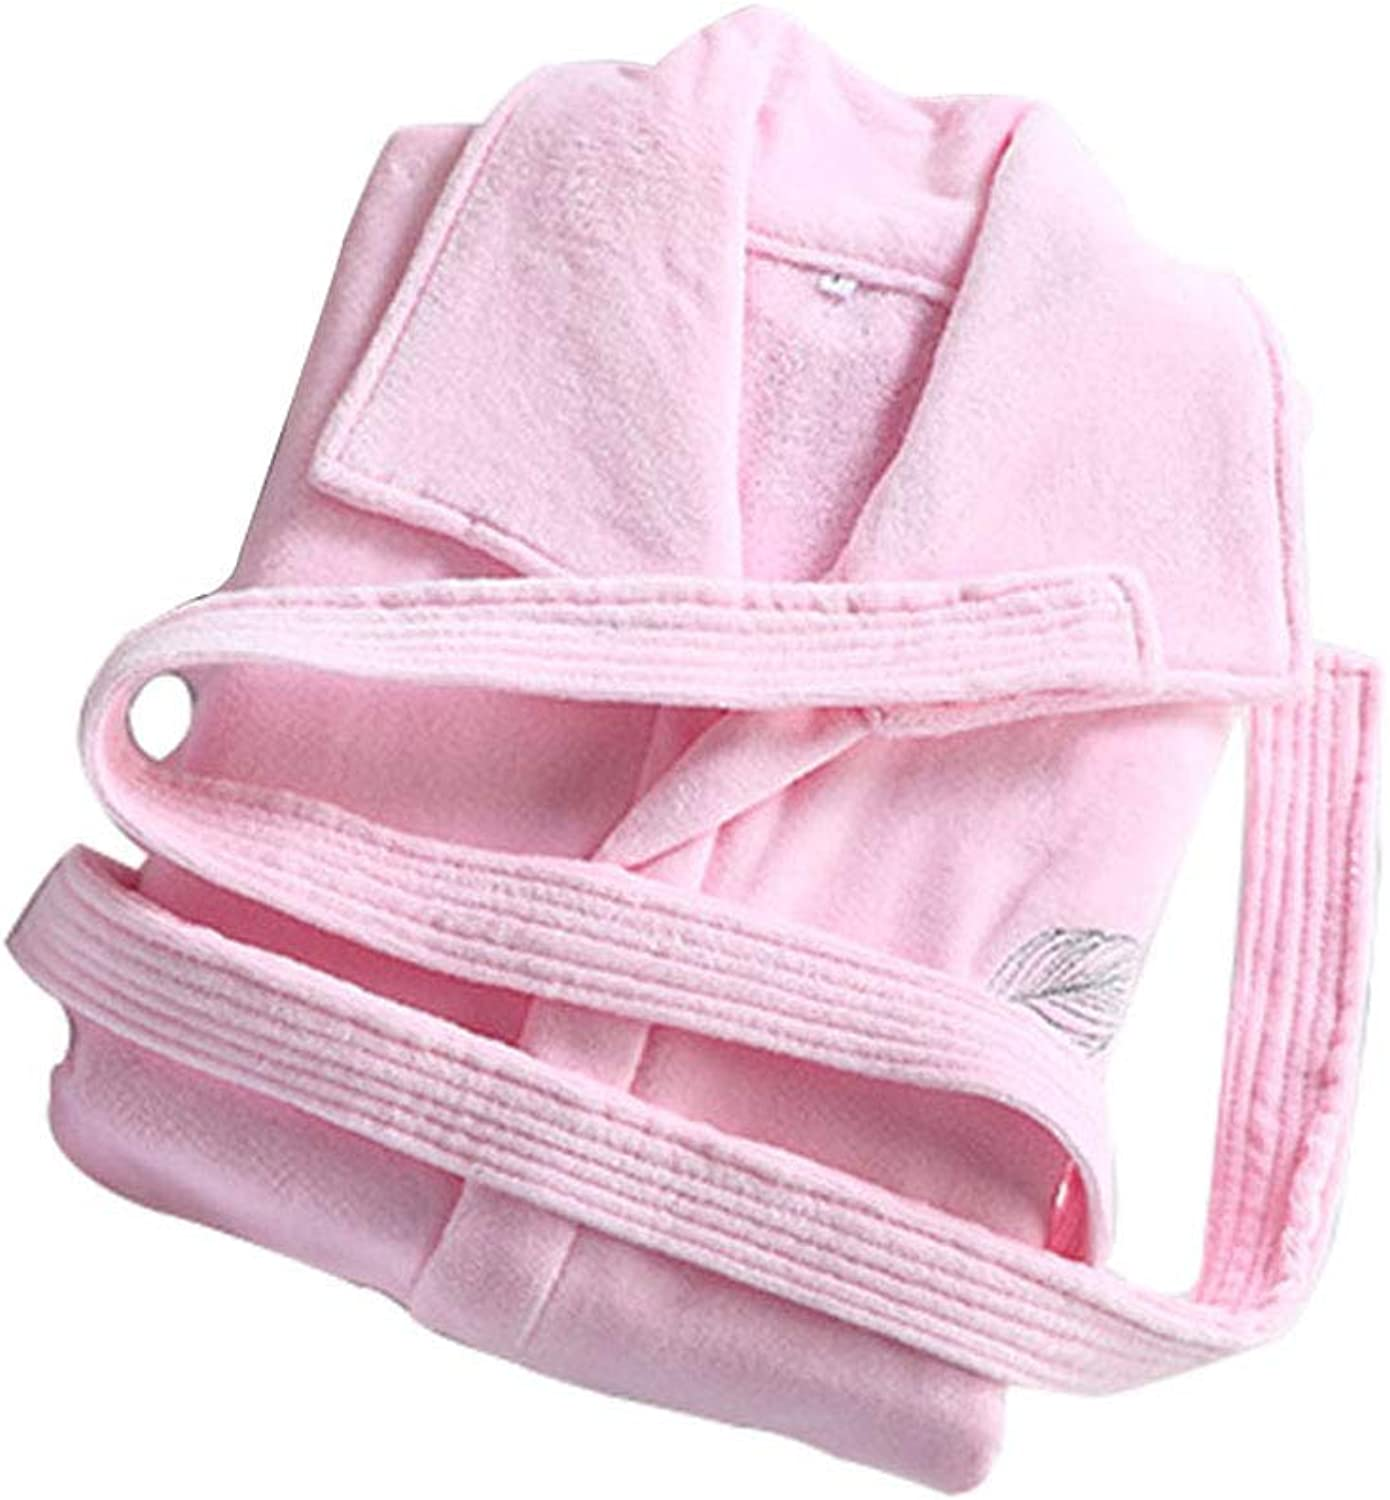 Bathrobe for Women Cotton Terry Cloth, Unisex Luxury Hotel Spa Towel Robes, Square Collar, 2 Pockets